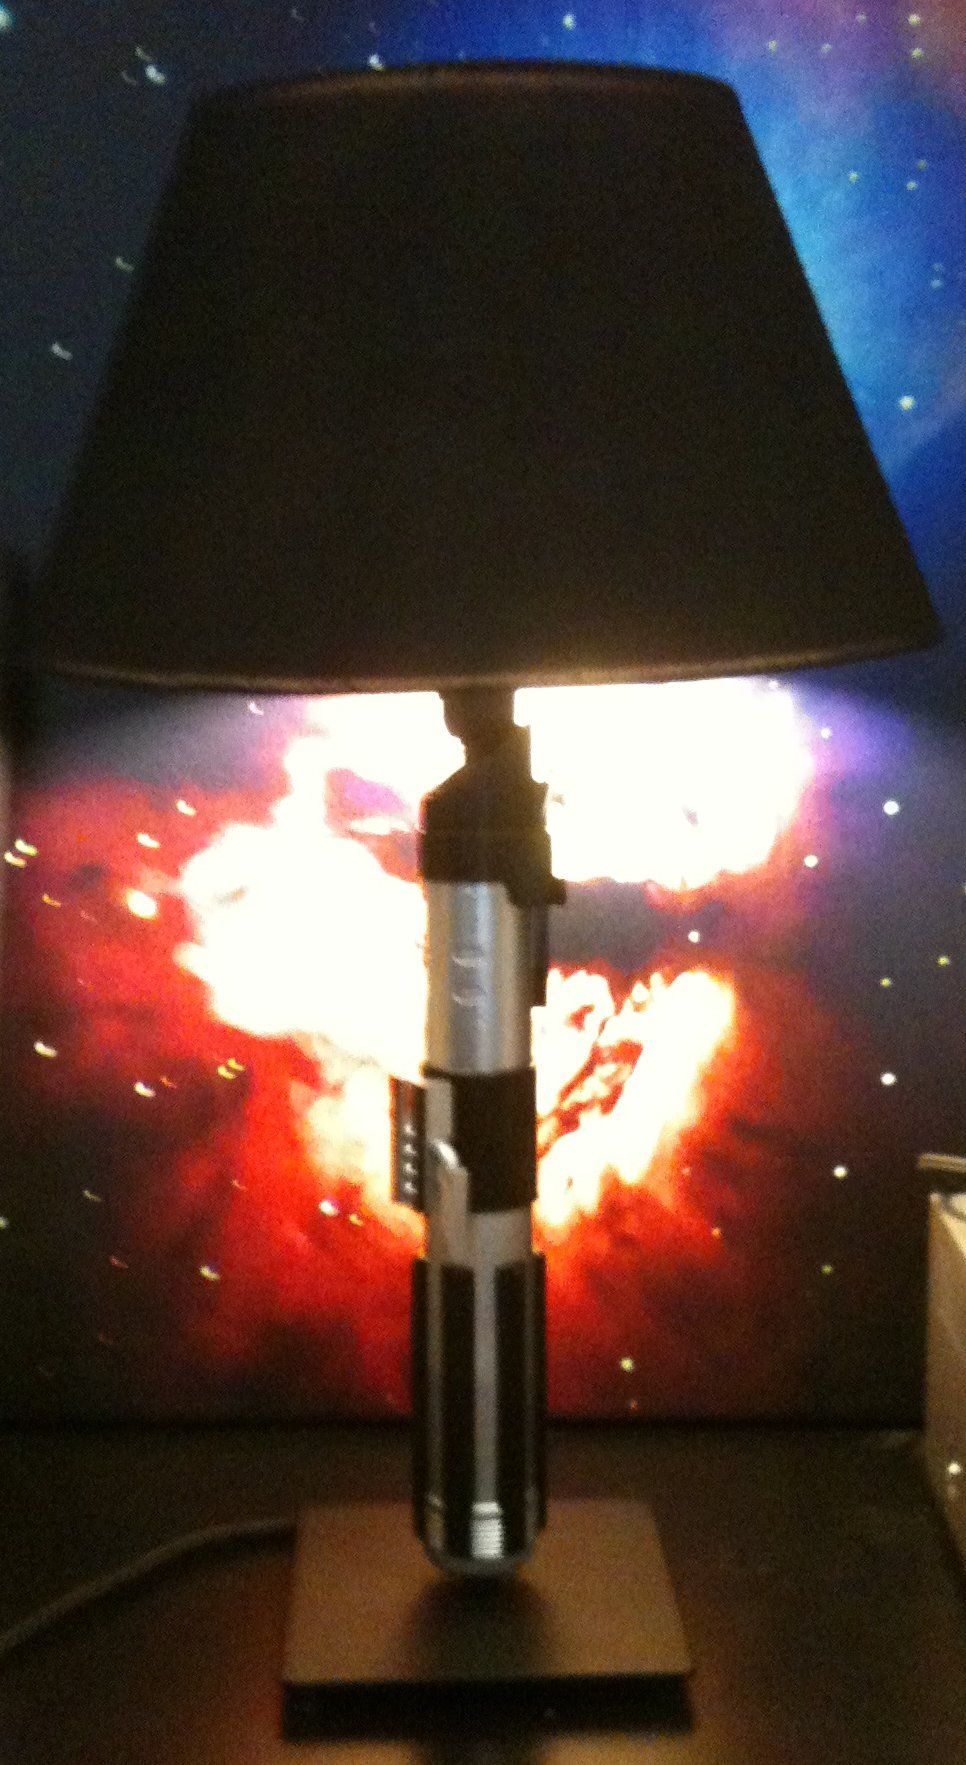 Do it yourself light saber lamp using an IKEA lamp and only costing around $20. This is awesome.